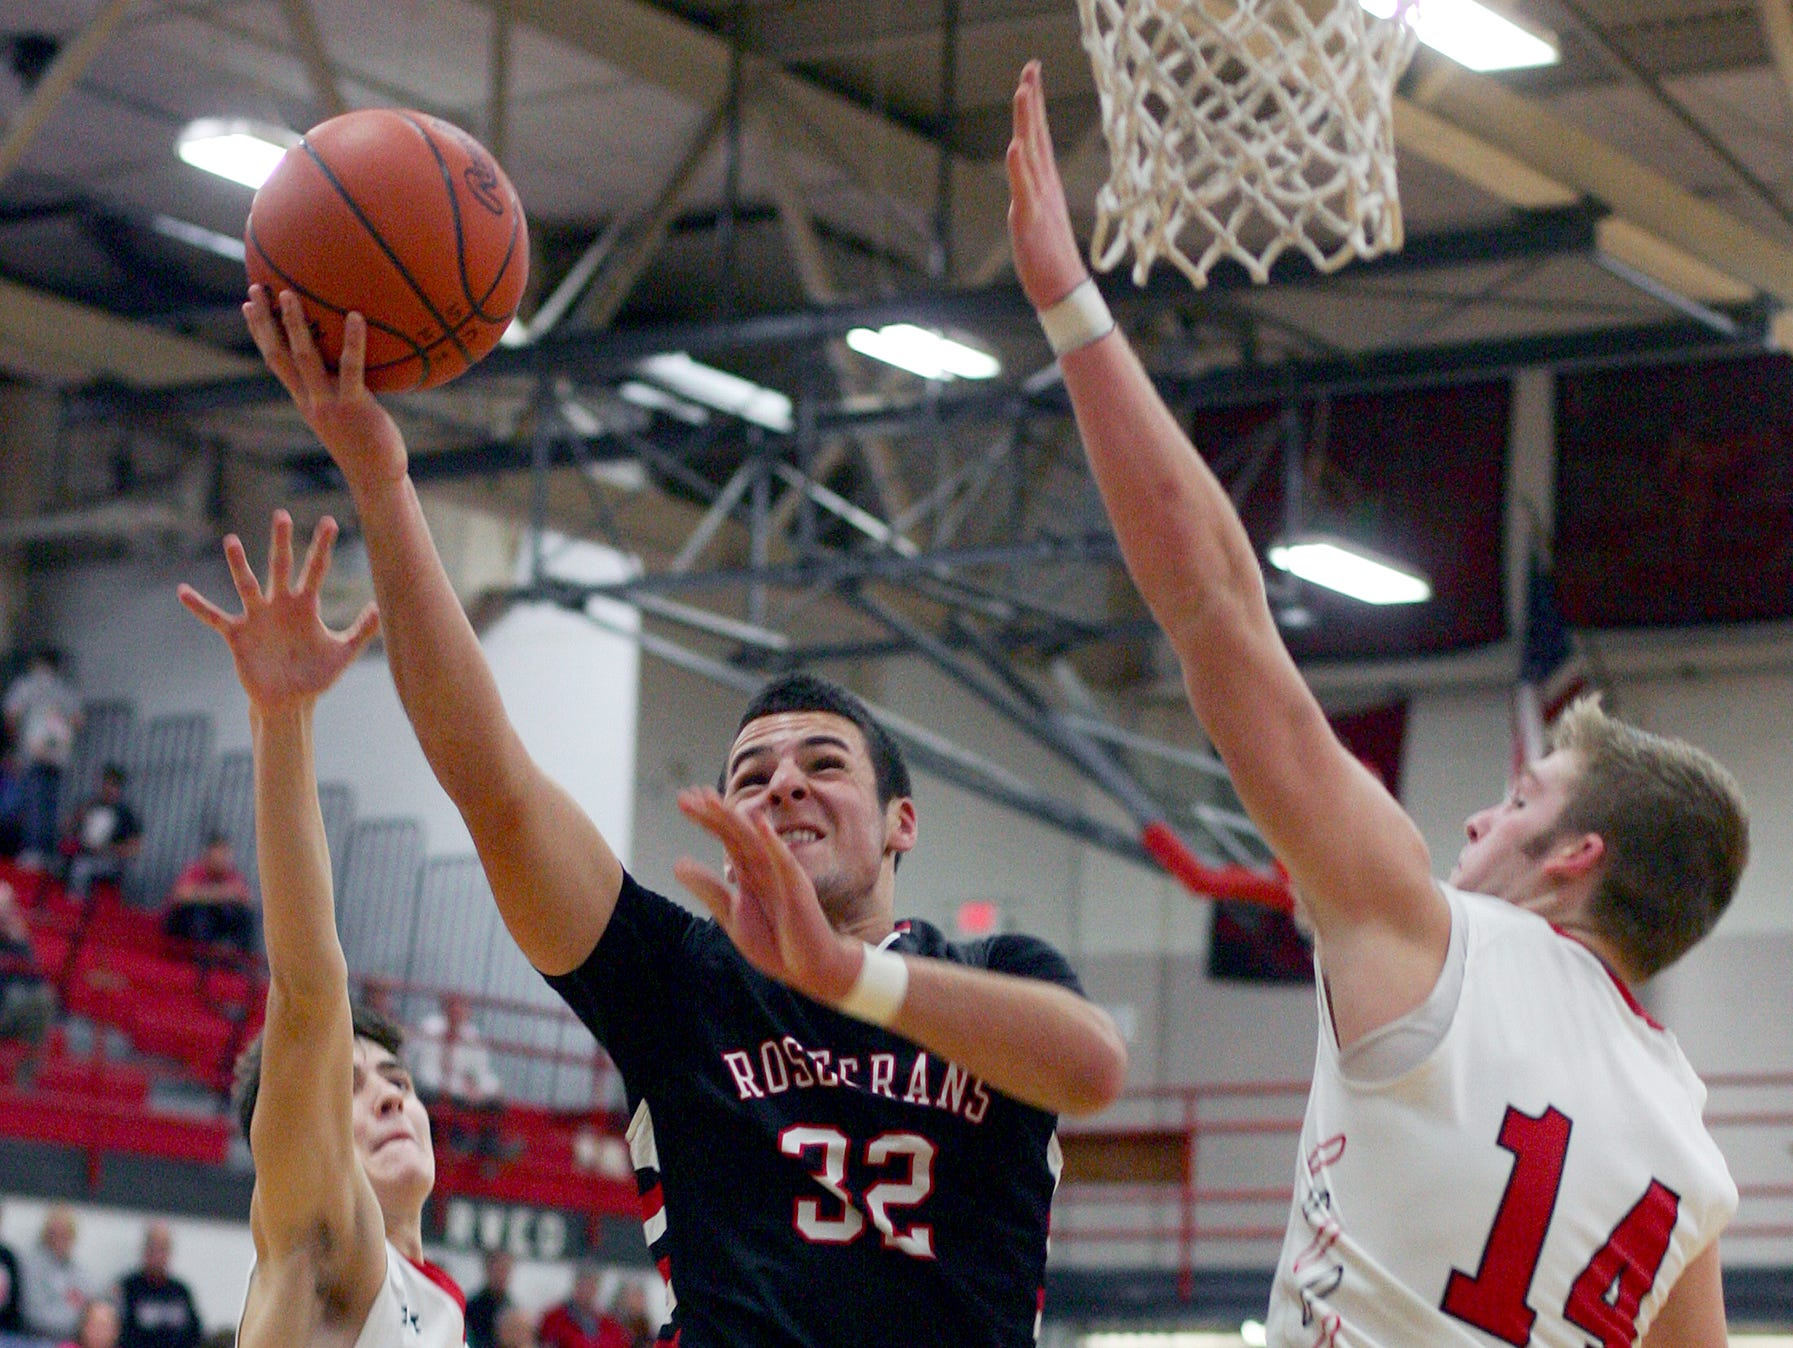 Bishop Rosecrans junior Aaron Gehlken drives to the basket under pressure from Coshocton junior Ashton Jarvis and junior Andrew Mason Friday during the Bishops' 69-68 victory in overtime.